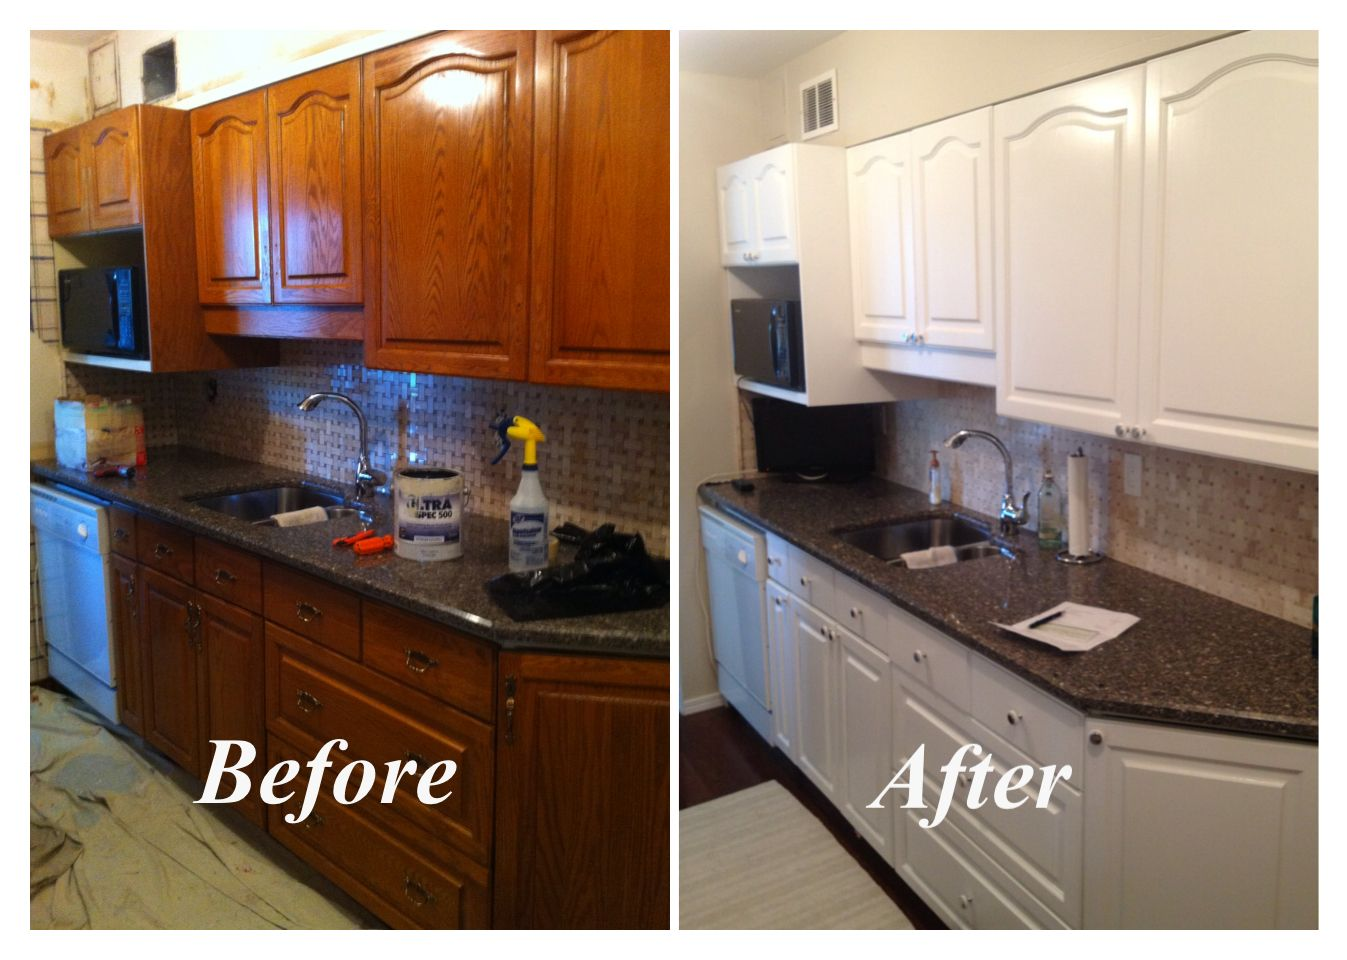 Pin By Canada Pro Painters On Cabinet Refinishing Painting Oak Cabinets White Refinishing Cabinets Oak Cabinets